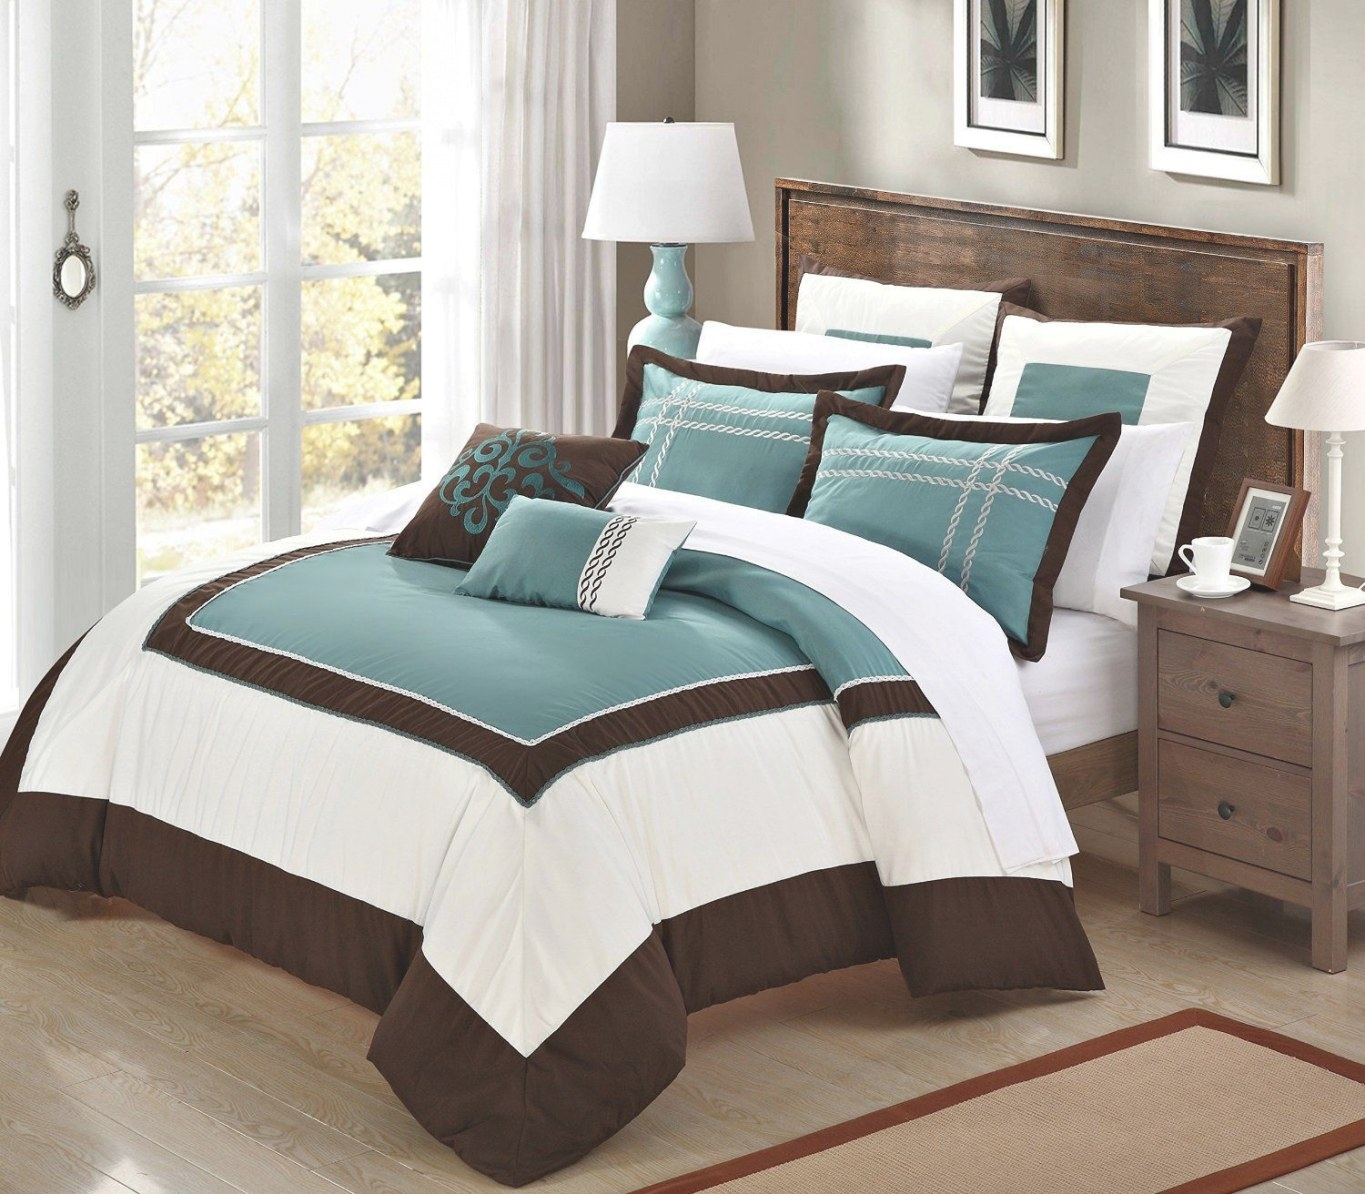 Turquoise Bedding - Google Search | Brown Bedroom, Bedroom pertaining to Turquoise And Brown Bathroom